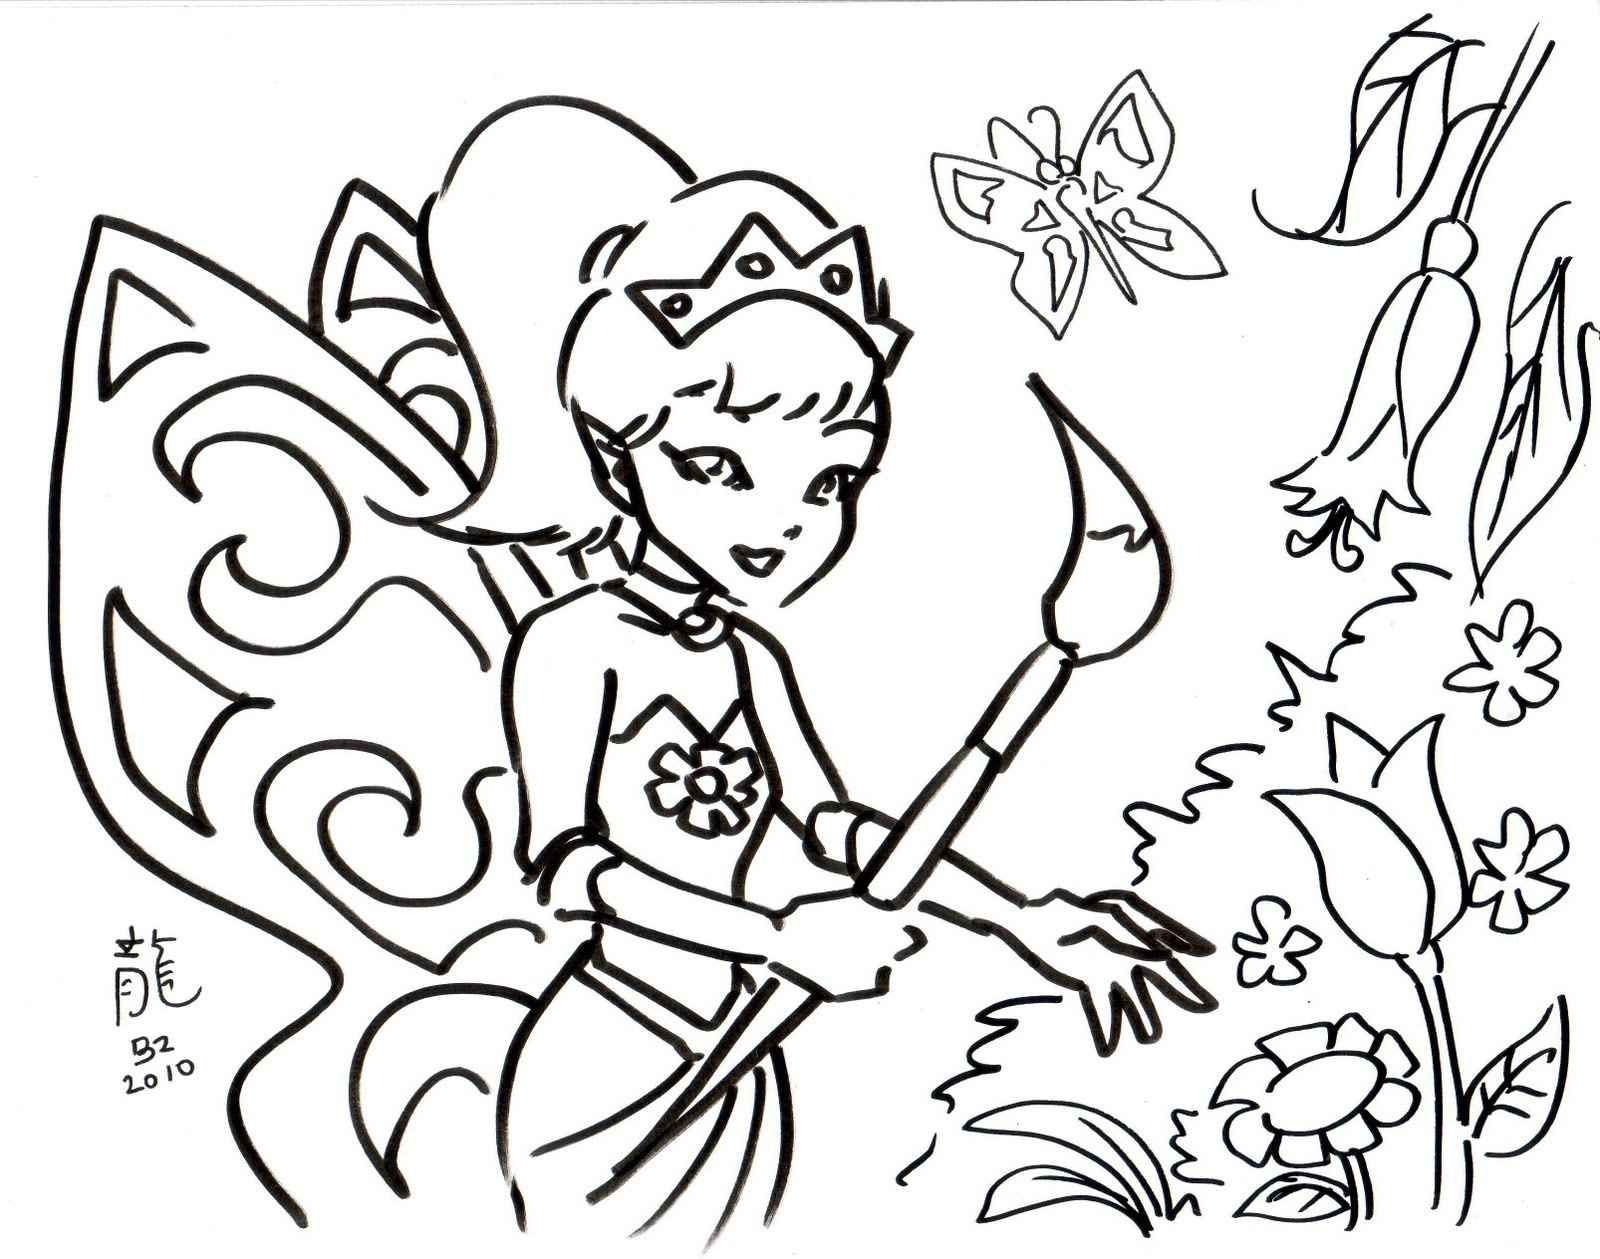 3rd Grade Coloring Pages Fun Sheets For Stimulating Your